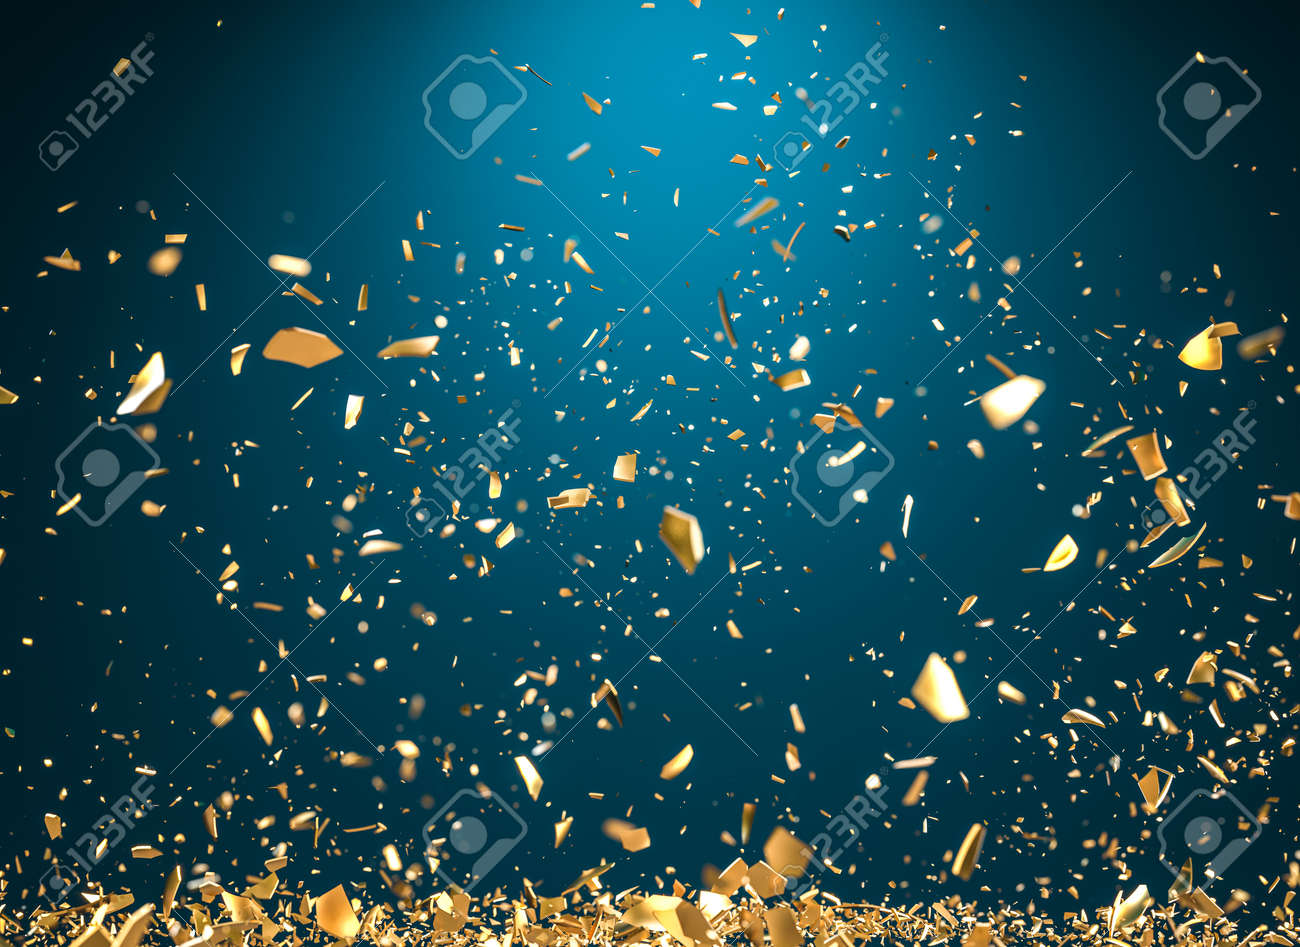 rain of gold metallic fragments on a blue background. 3d render - 173236142